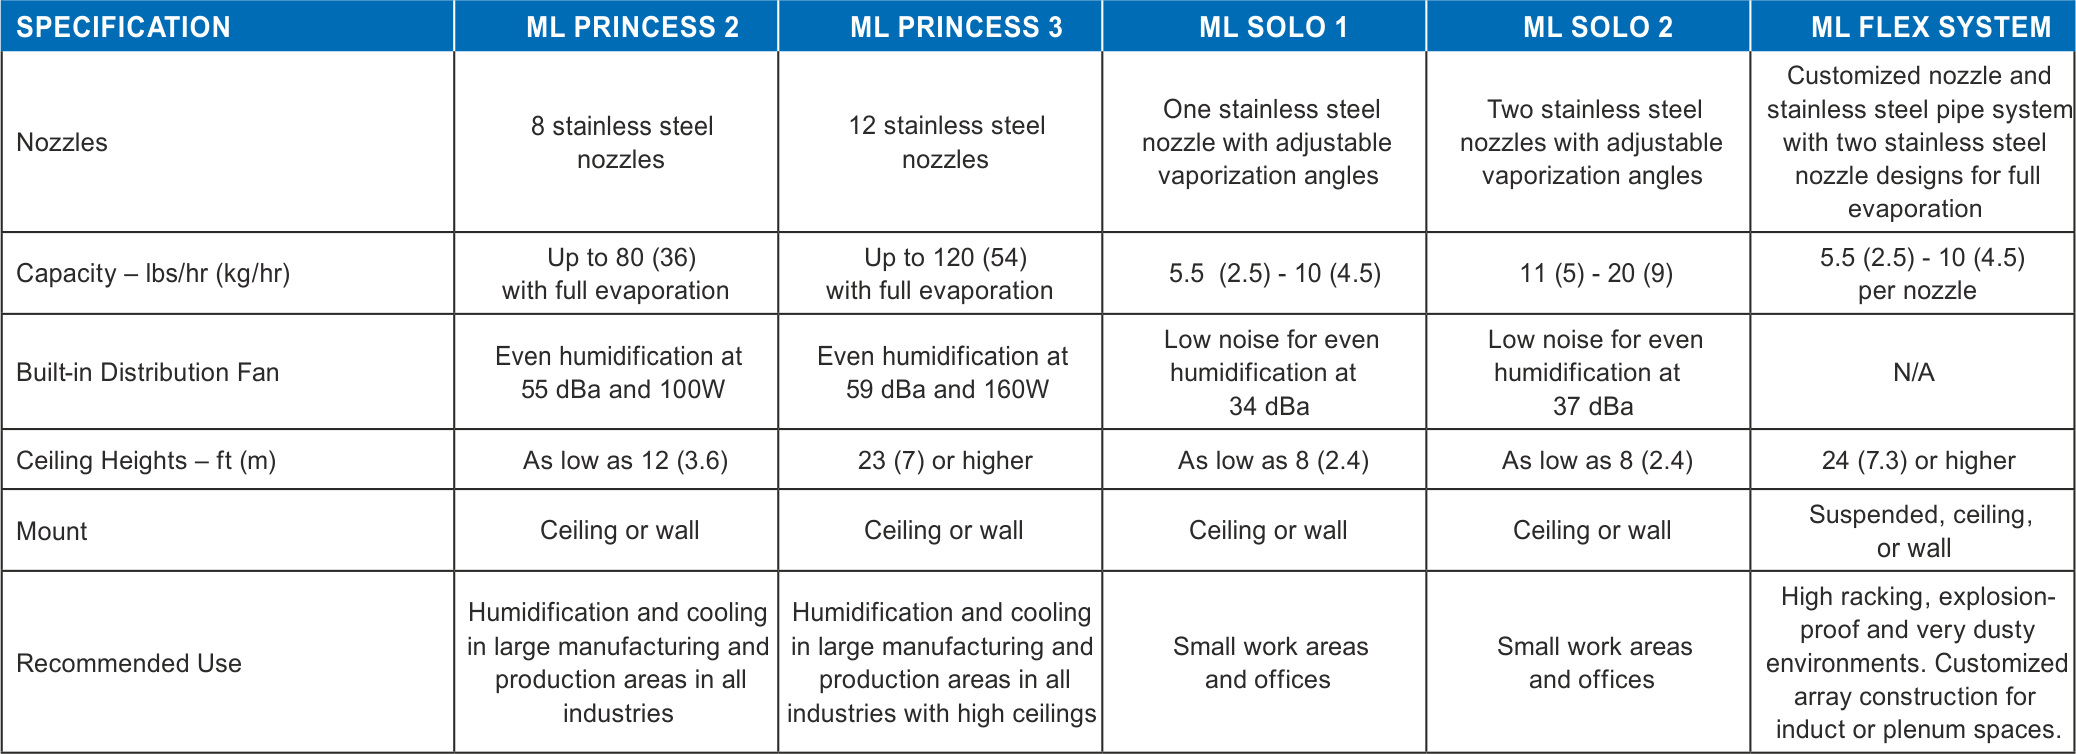 Specification chart for ML Princess series